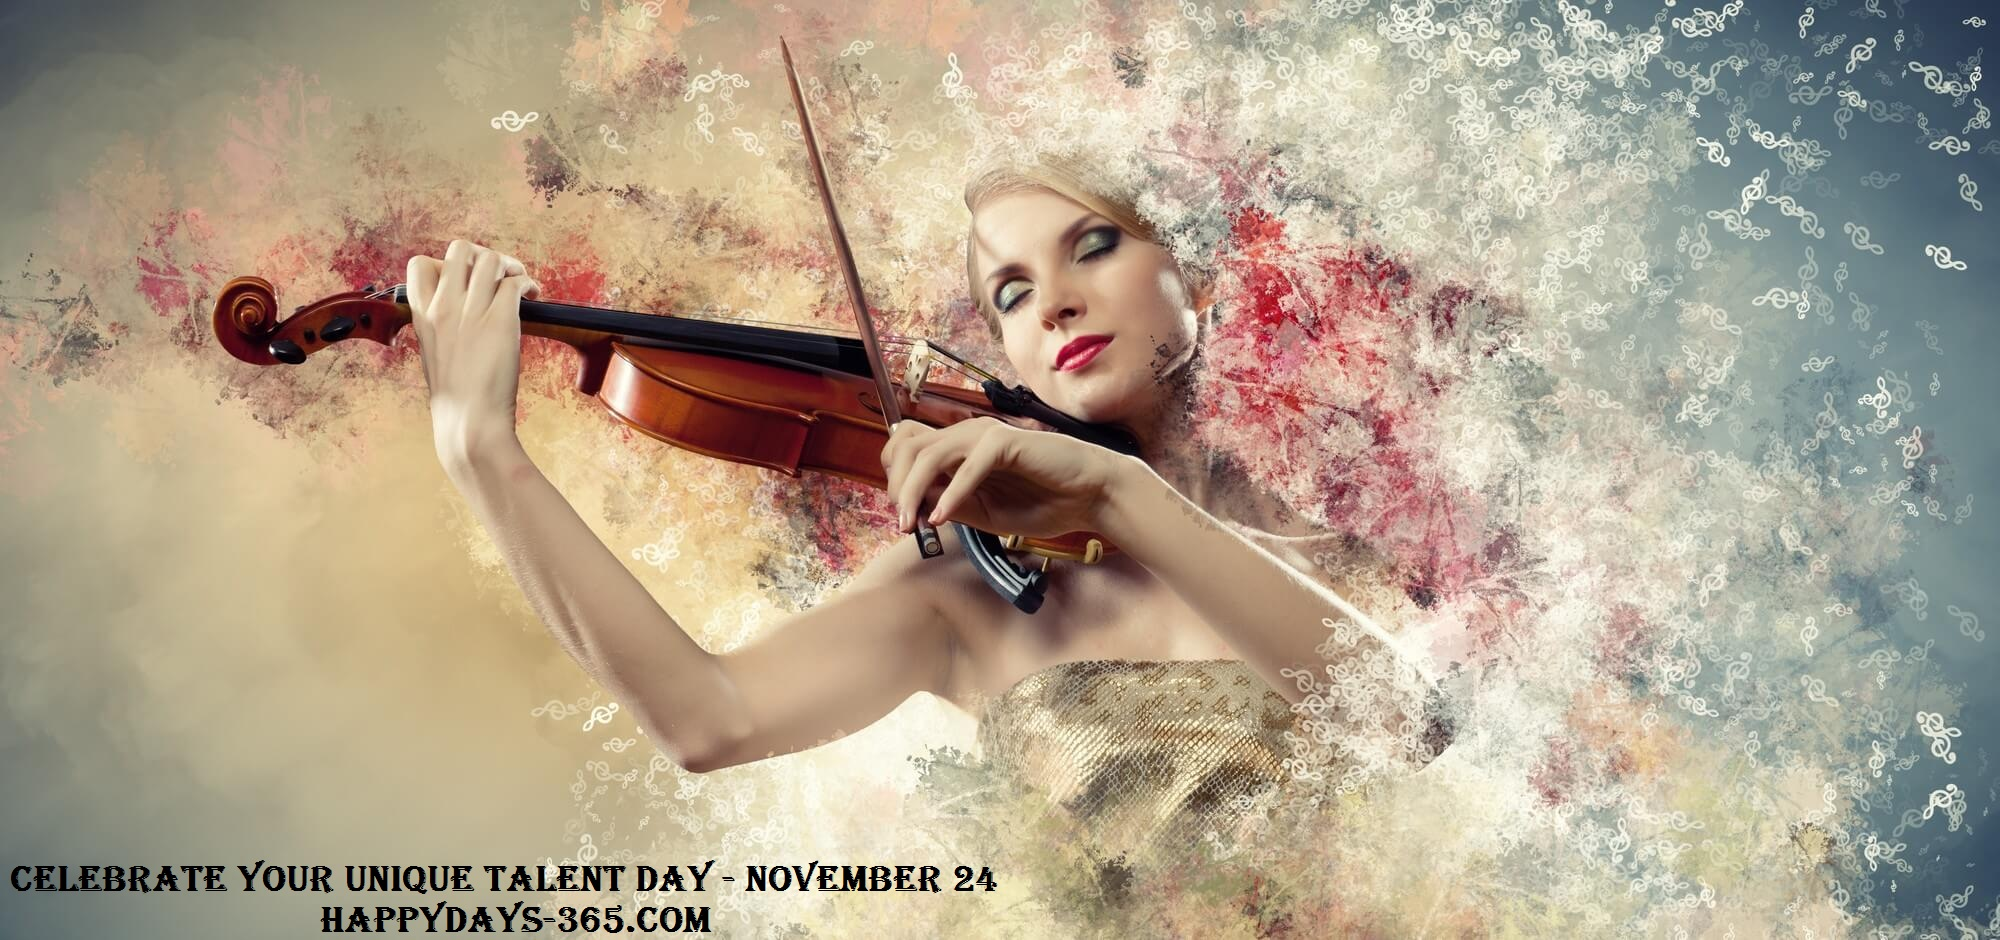 Celebrate Your Unique Talent Day – November 24, 2019